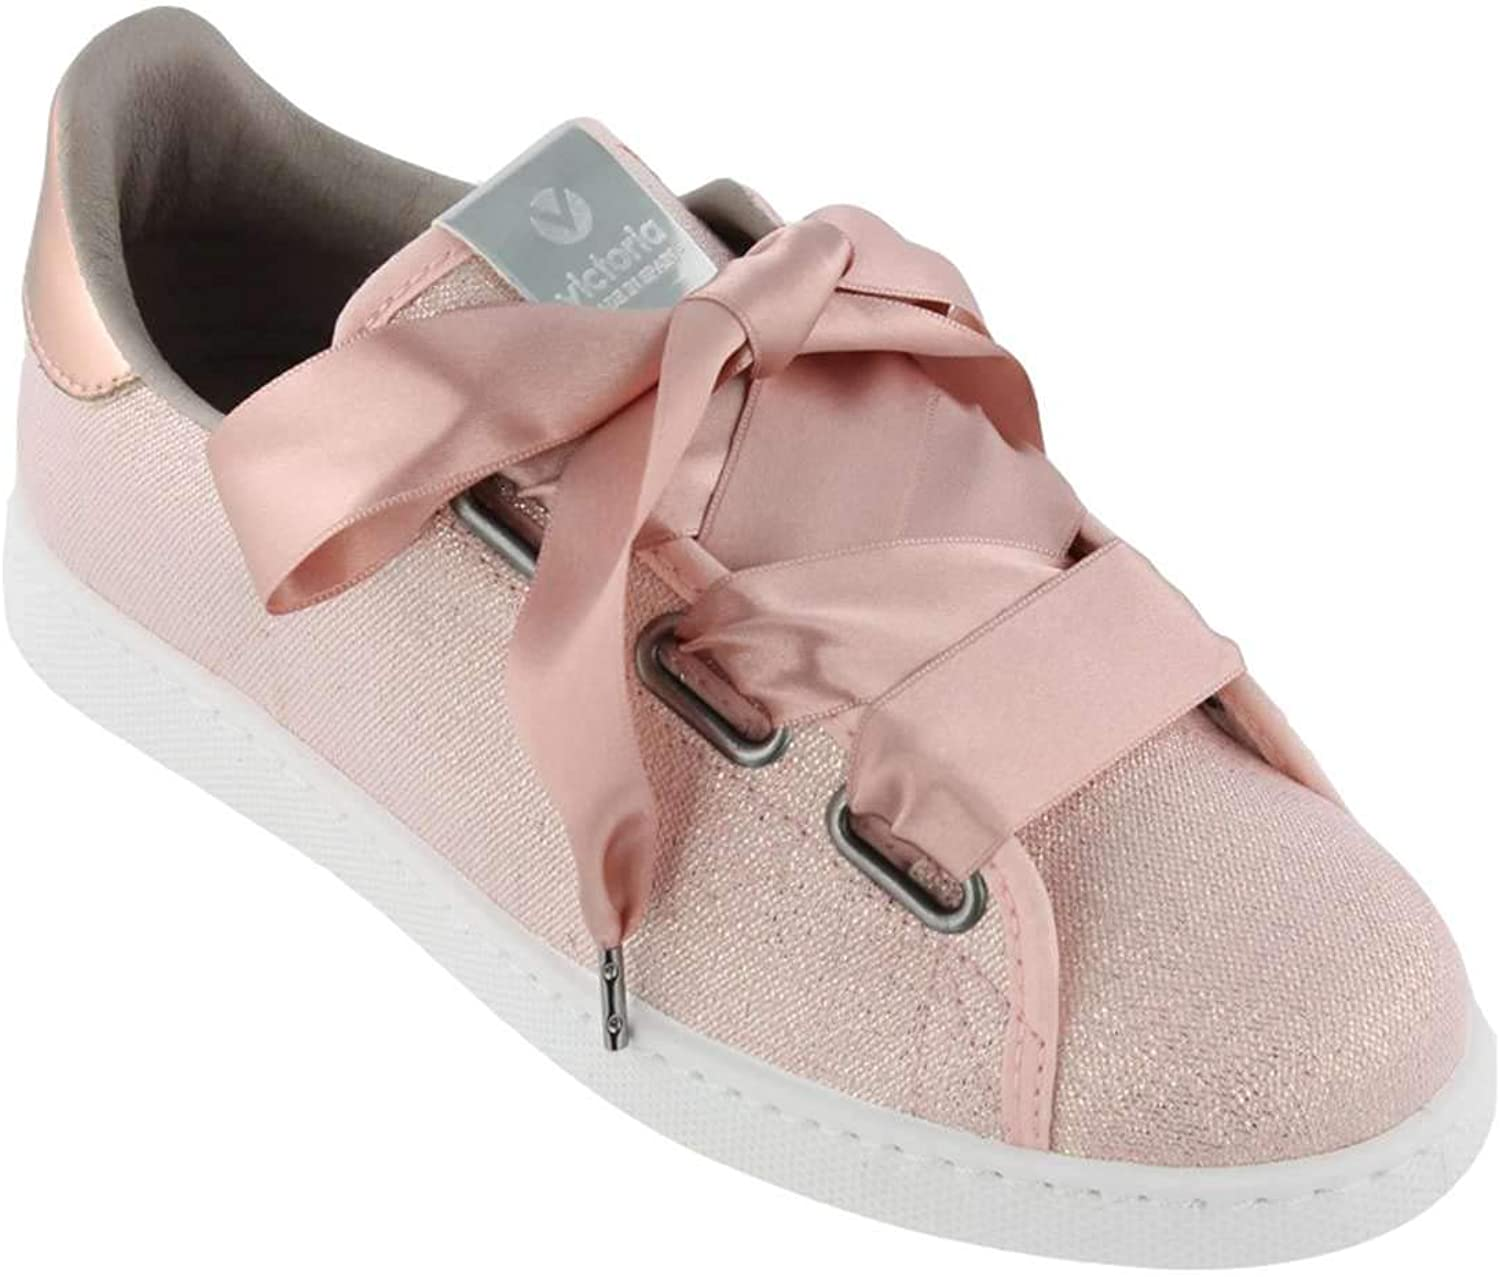 Victoria Women's Ribbon Bow Casual Sneakers, pink,12 M US